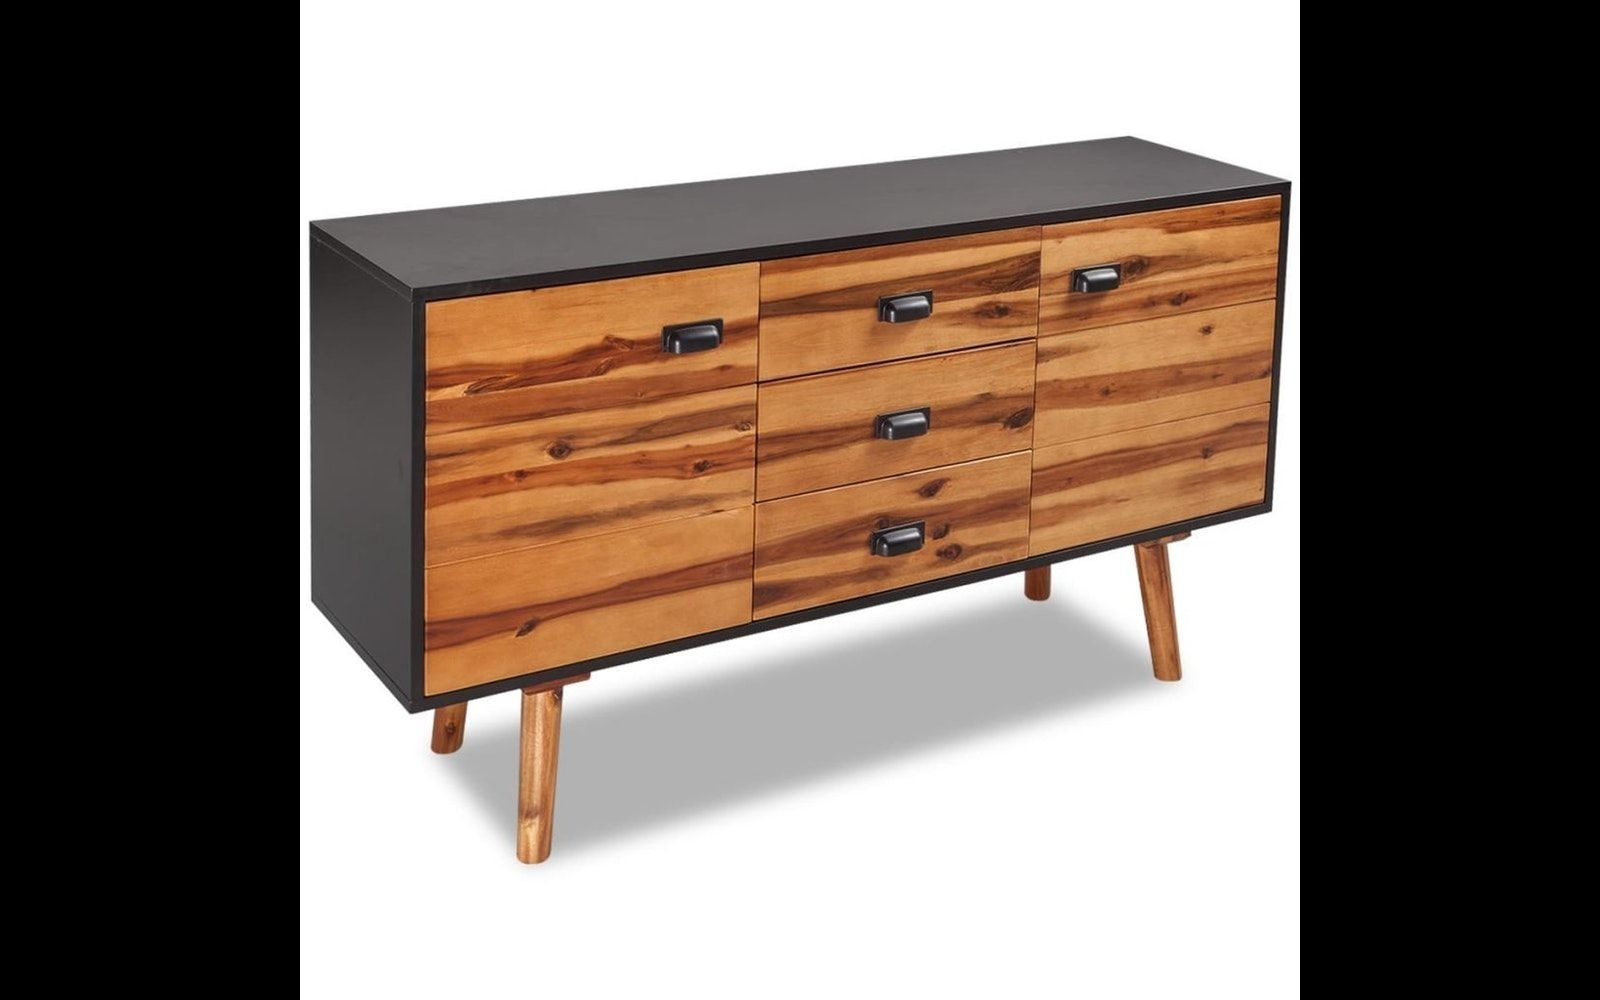 Solid Acacia Wood Sideboard   Buffet, Hutches & Sideboards For Sale throughout Jaxon Sideboards (Image 27 of 30)